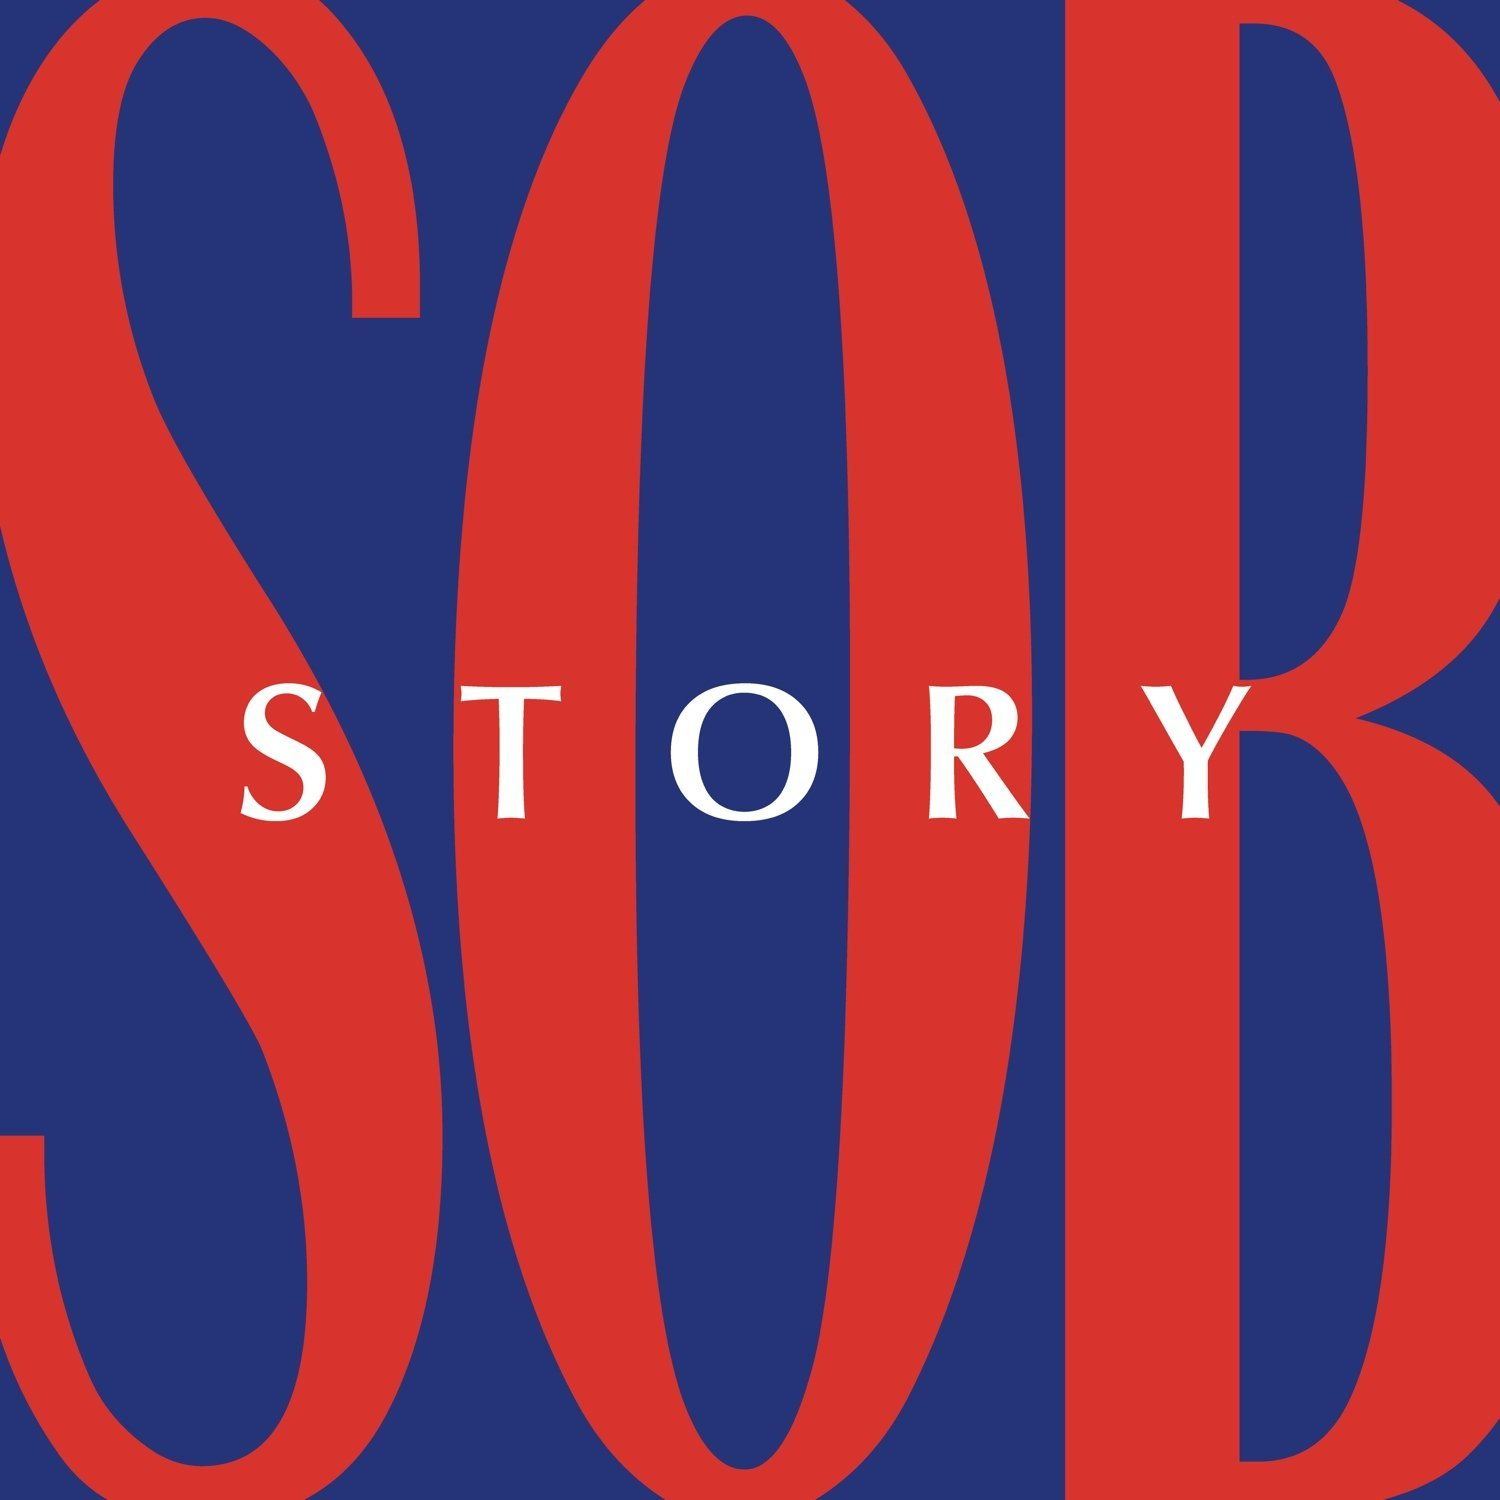 spectrals-sob-story-cover